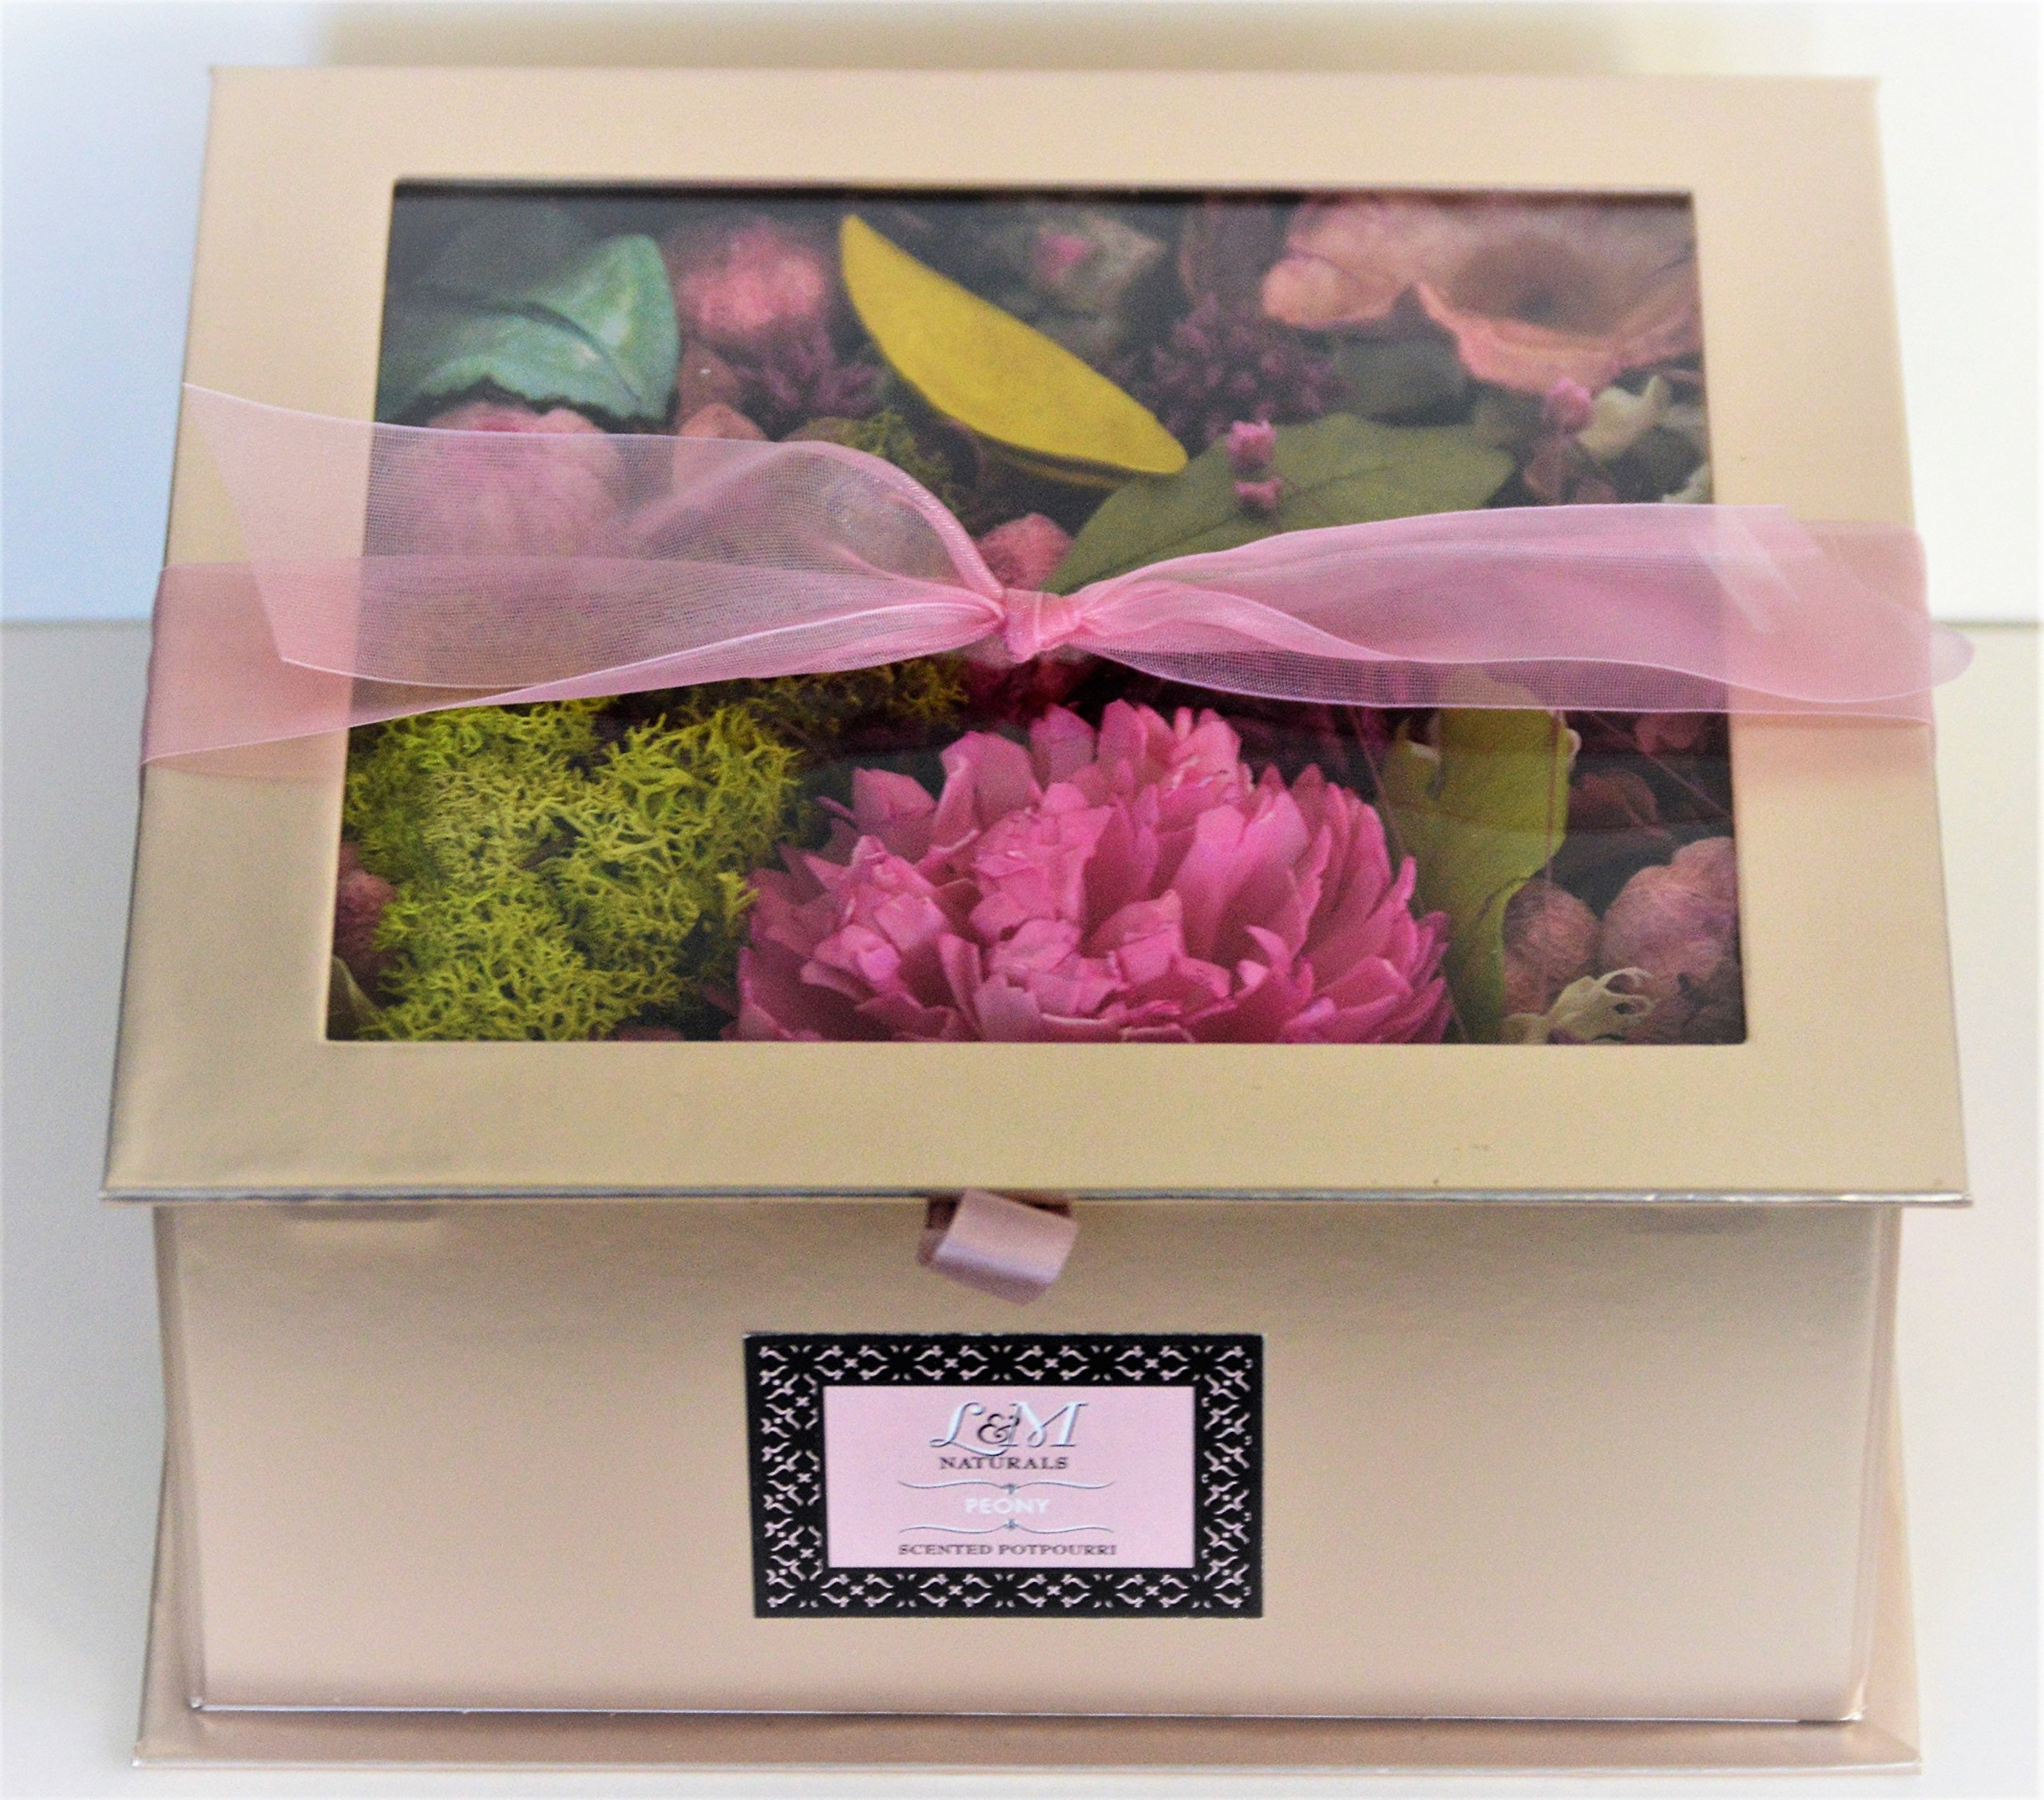 L&M Naturals Peony Potpourri Scented Potpourri- Beautiful 11.5oz Box filled with Botanicals scented with Tuberose~ Made in the USA! by L&M Naturals (Image #1)